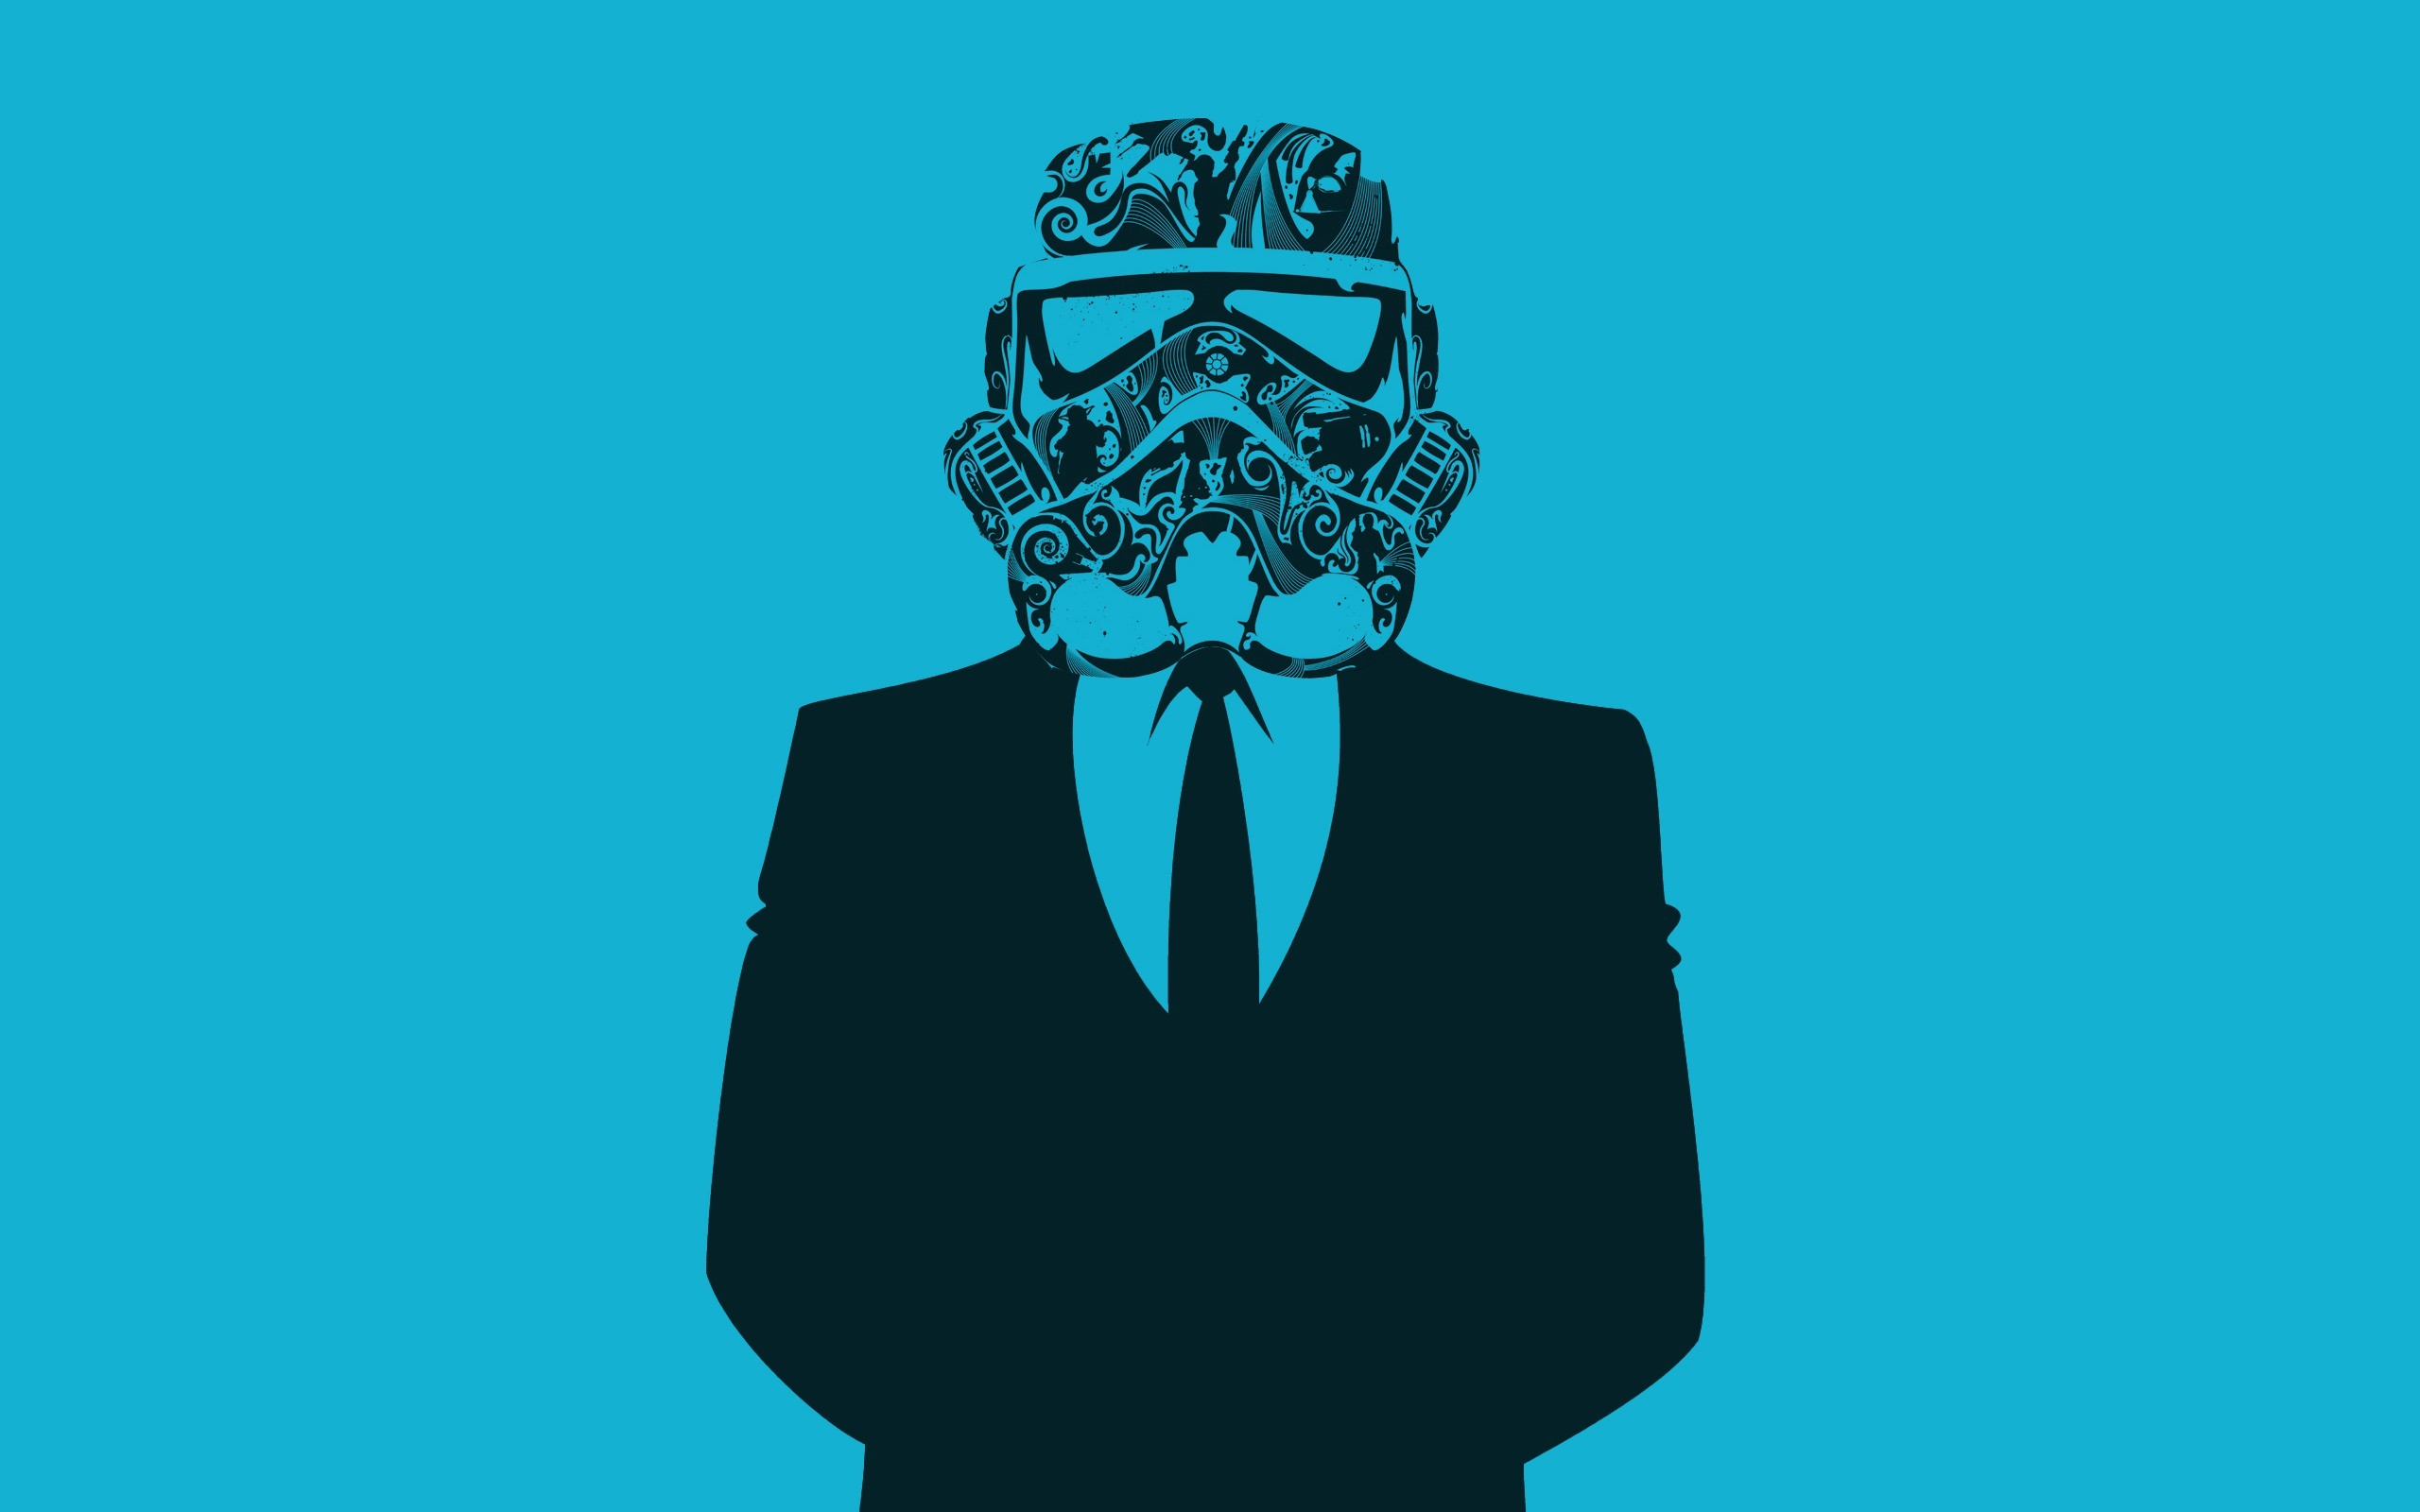 Iphone 5 Wallpaper Hd Star Wars Star Wars Storm Trooper Plaine Papier Peint Allwallpaper